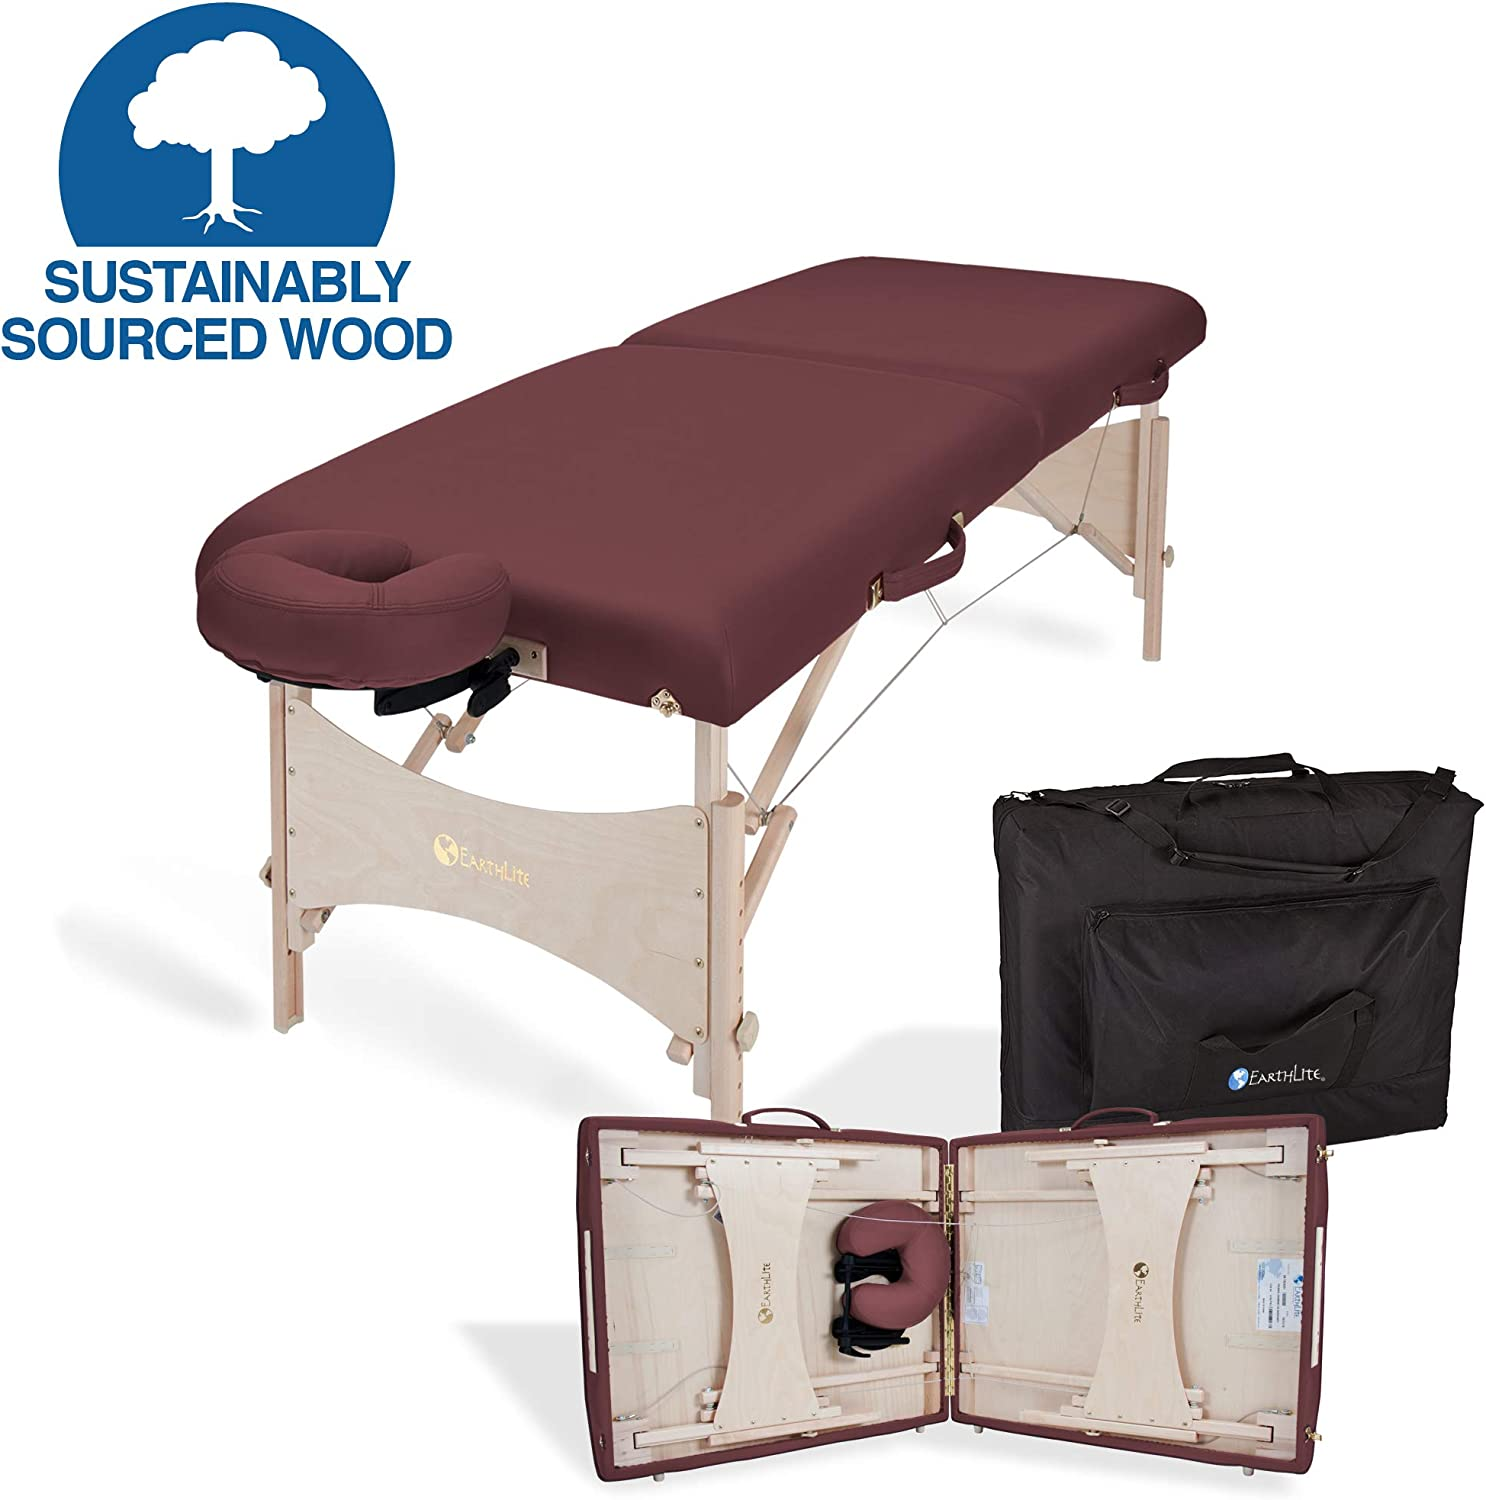 "EARTHLITE Portable Massage Table HARMONY DX – Foldable Physiotherapy/Treatment/Stretching Table, Eco-Friendly Design, Hard Maple, Superior Comfort incl. Face Cradle & Carry Case (30"" x 73"")"